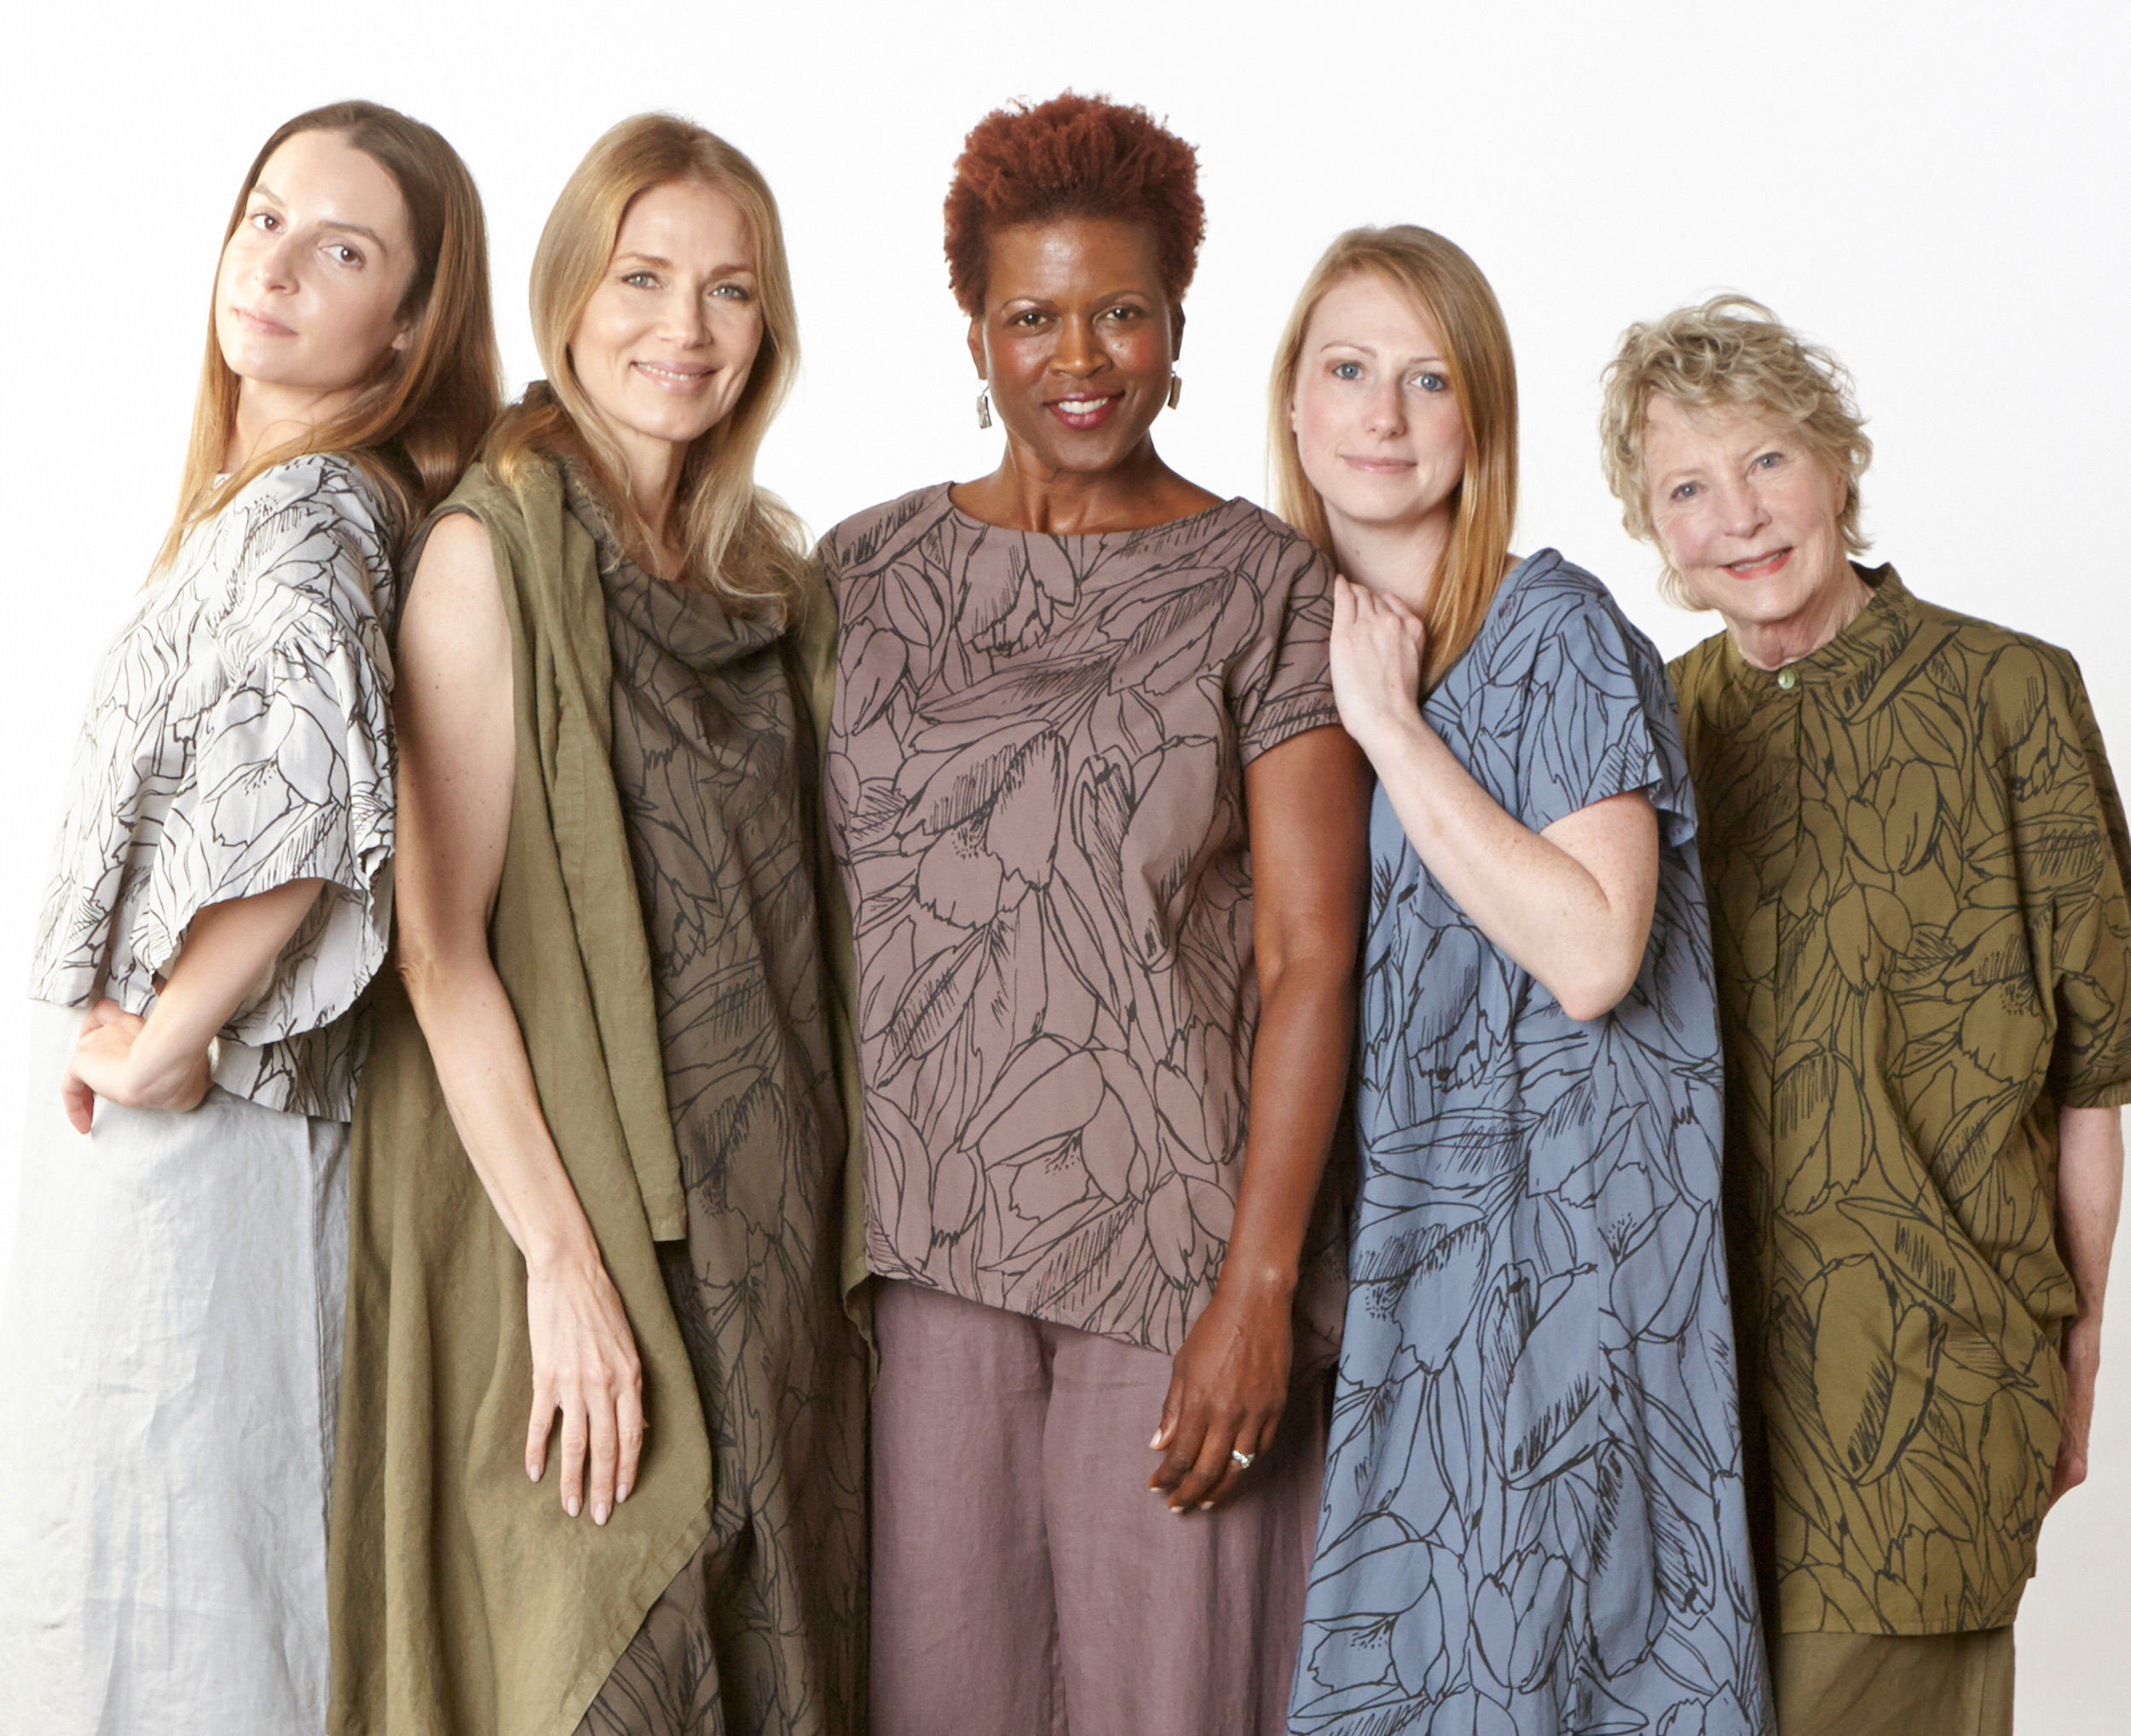 Frida Shirt in Pier, Henrietta Dress in Kvass, Ivy Shirt in Easel, Winslow Dress in Loon, Jake Shirt in Grove Flower Poplin, Luella Dress in Pier, Eve Vest in Grove, Oscar Pant in Easel Light Linen